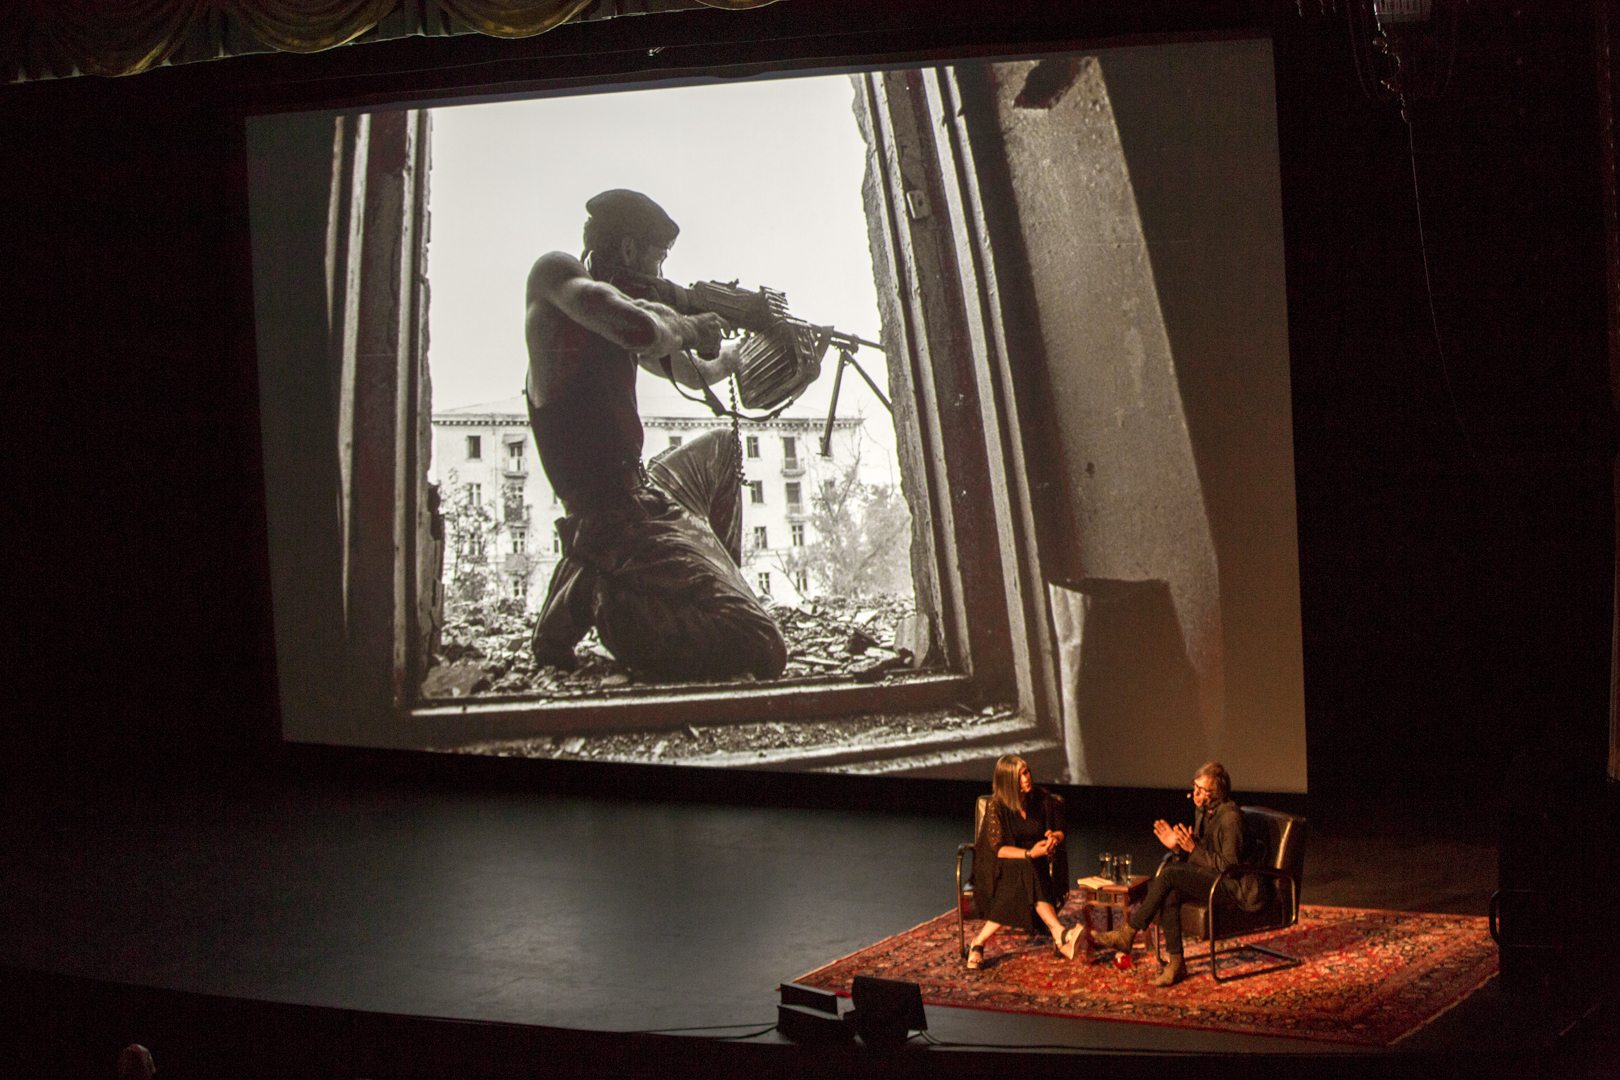 Christopher Morris in conversation with MaryAnne Golon at the Paramount Theater. Photo © Jon Golden